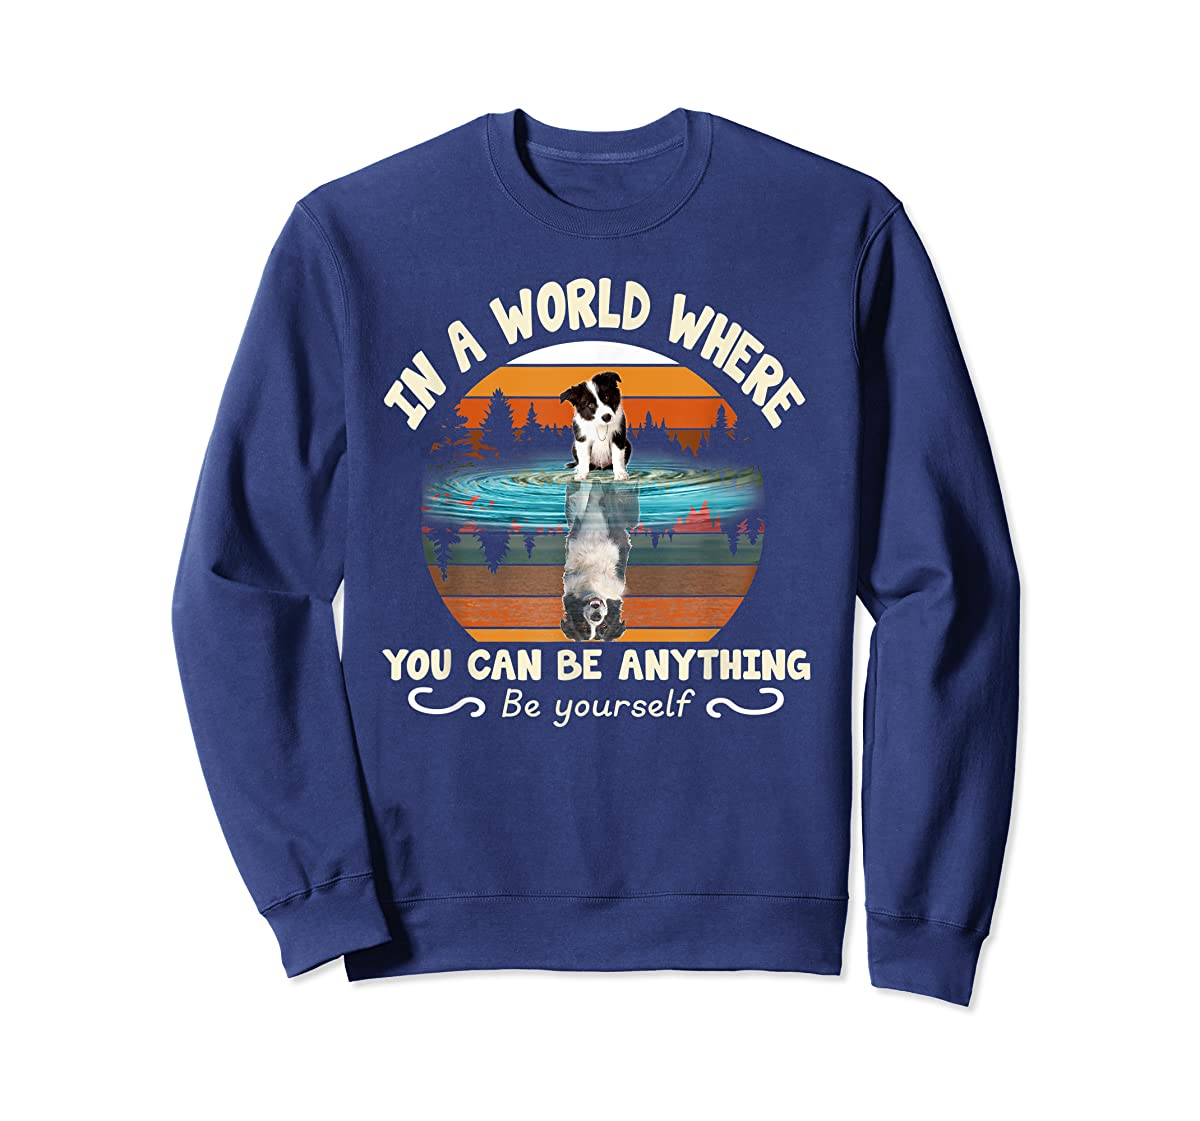 In A World Where You Can Be Anything Border Collie Tshirt-Sweatshirt-Navy